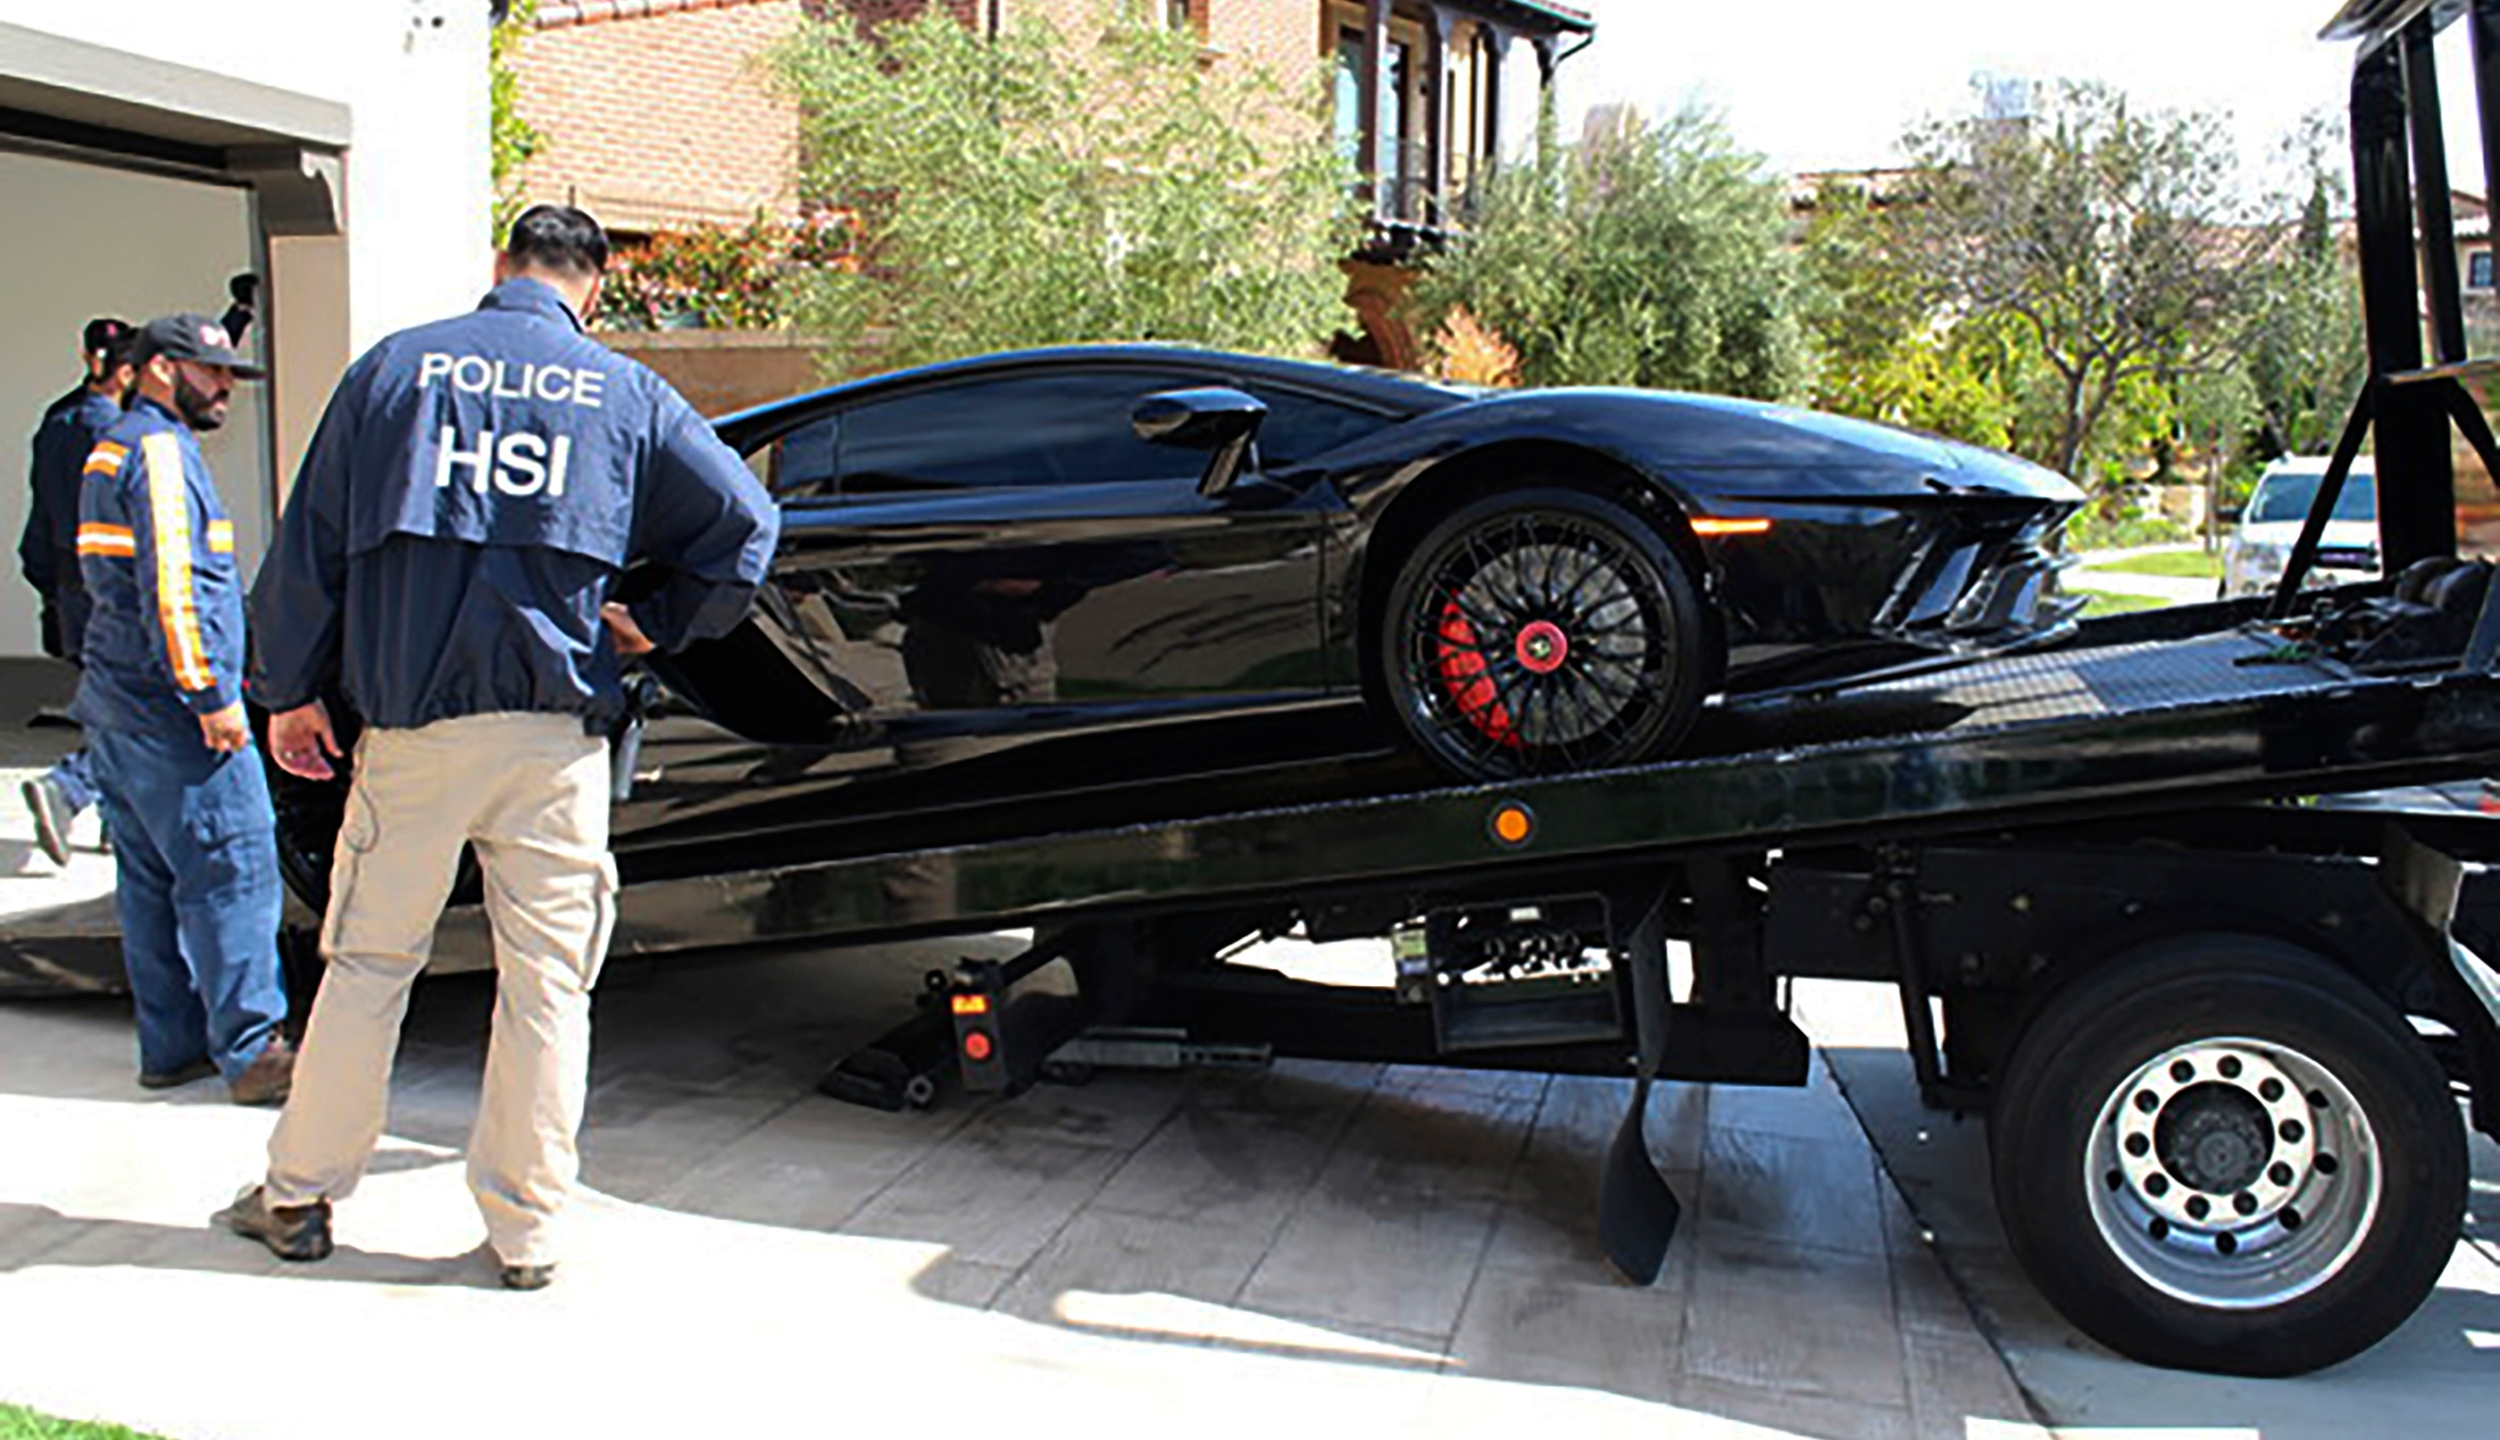 This photo provided by U.S. Immigration and Customs Enforcement shows a special agent with HSI Los Angeles's El Camino Real Financial Crimes Task Force seize a Ferrari from Orange County businessman Mustafa Qadiri on April 7, 2021, in Santa Ana, Calif. (U.S. Immigration and Customs Enforcement via AP)